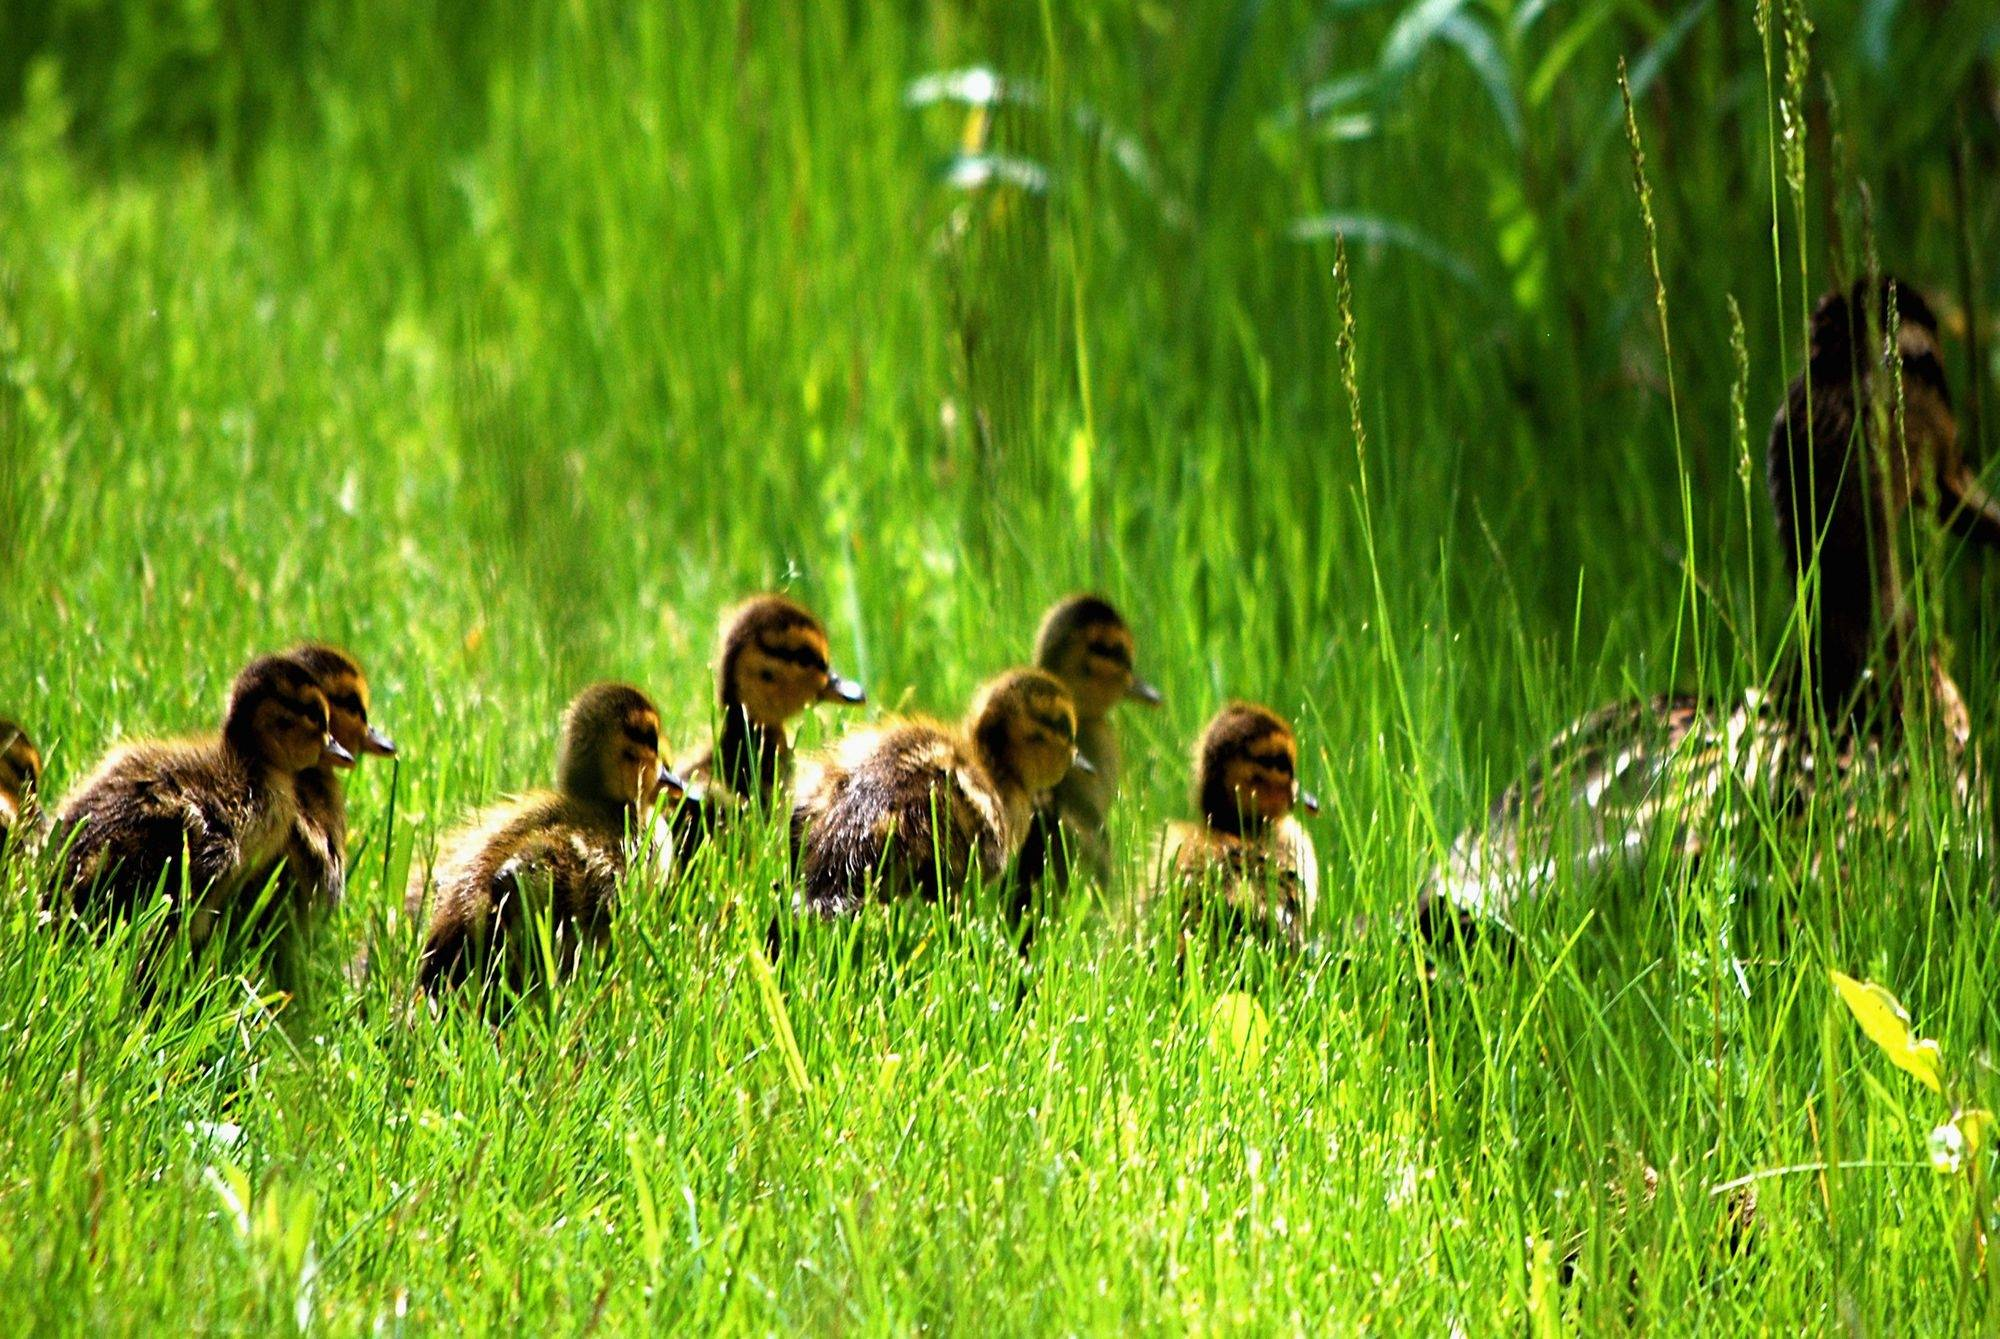 This picture shows several ducklings following their mother into a hawk-free zone.